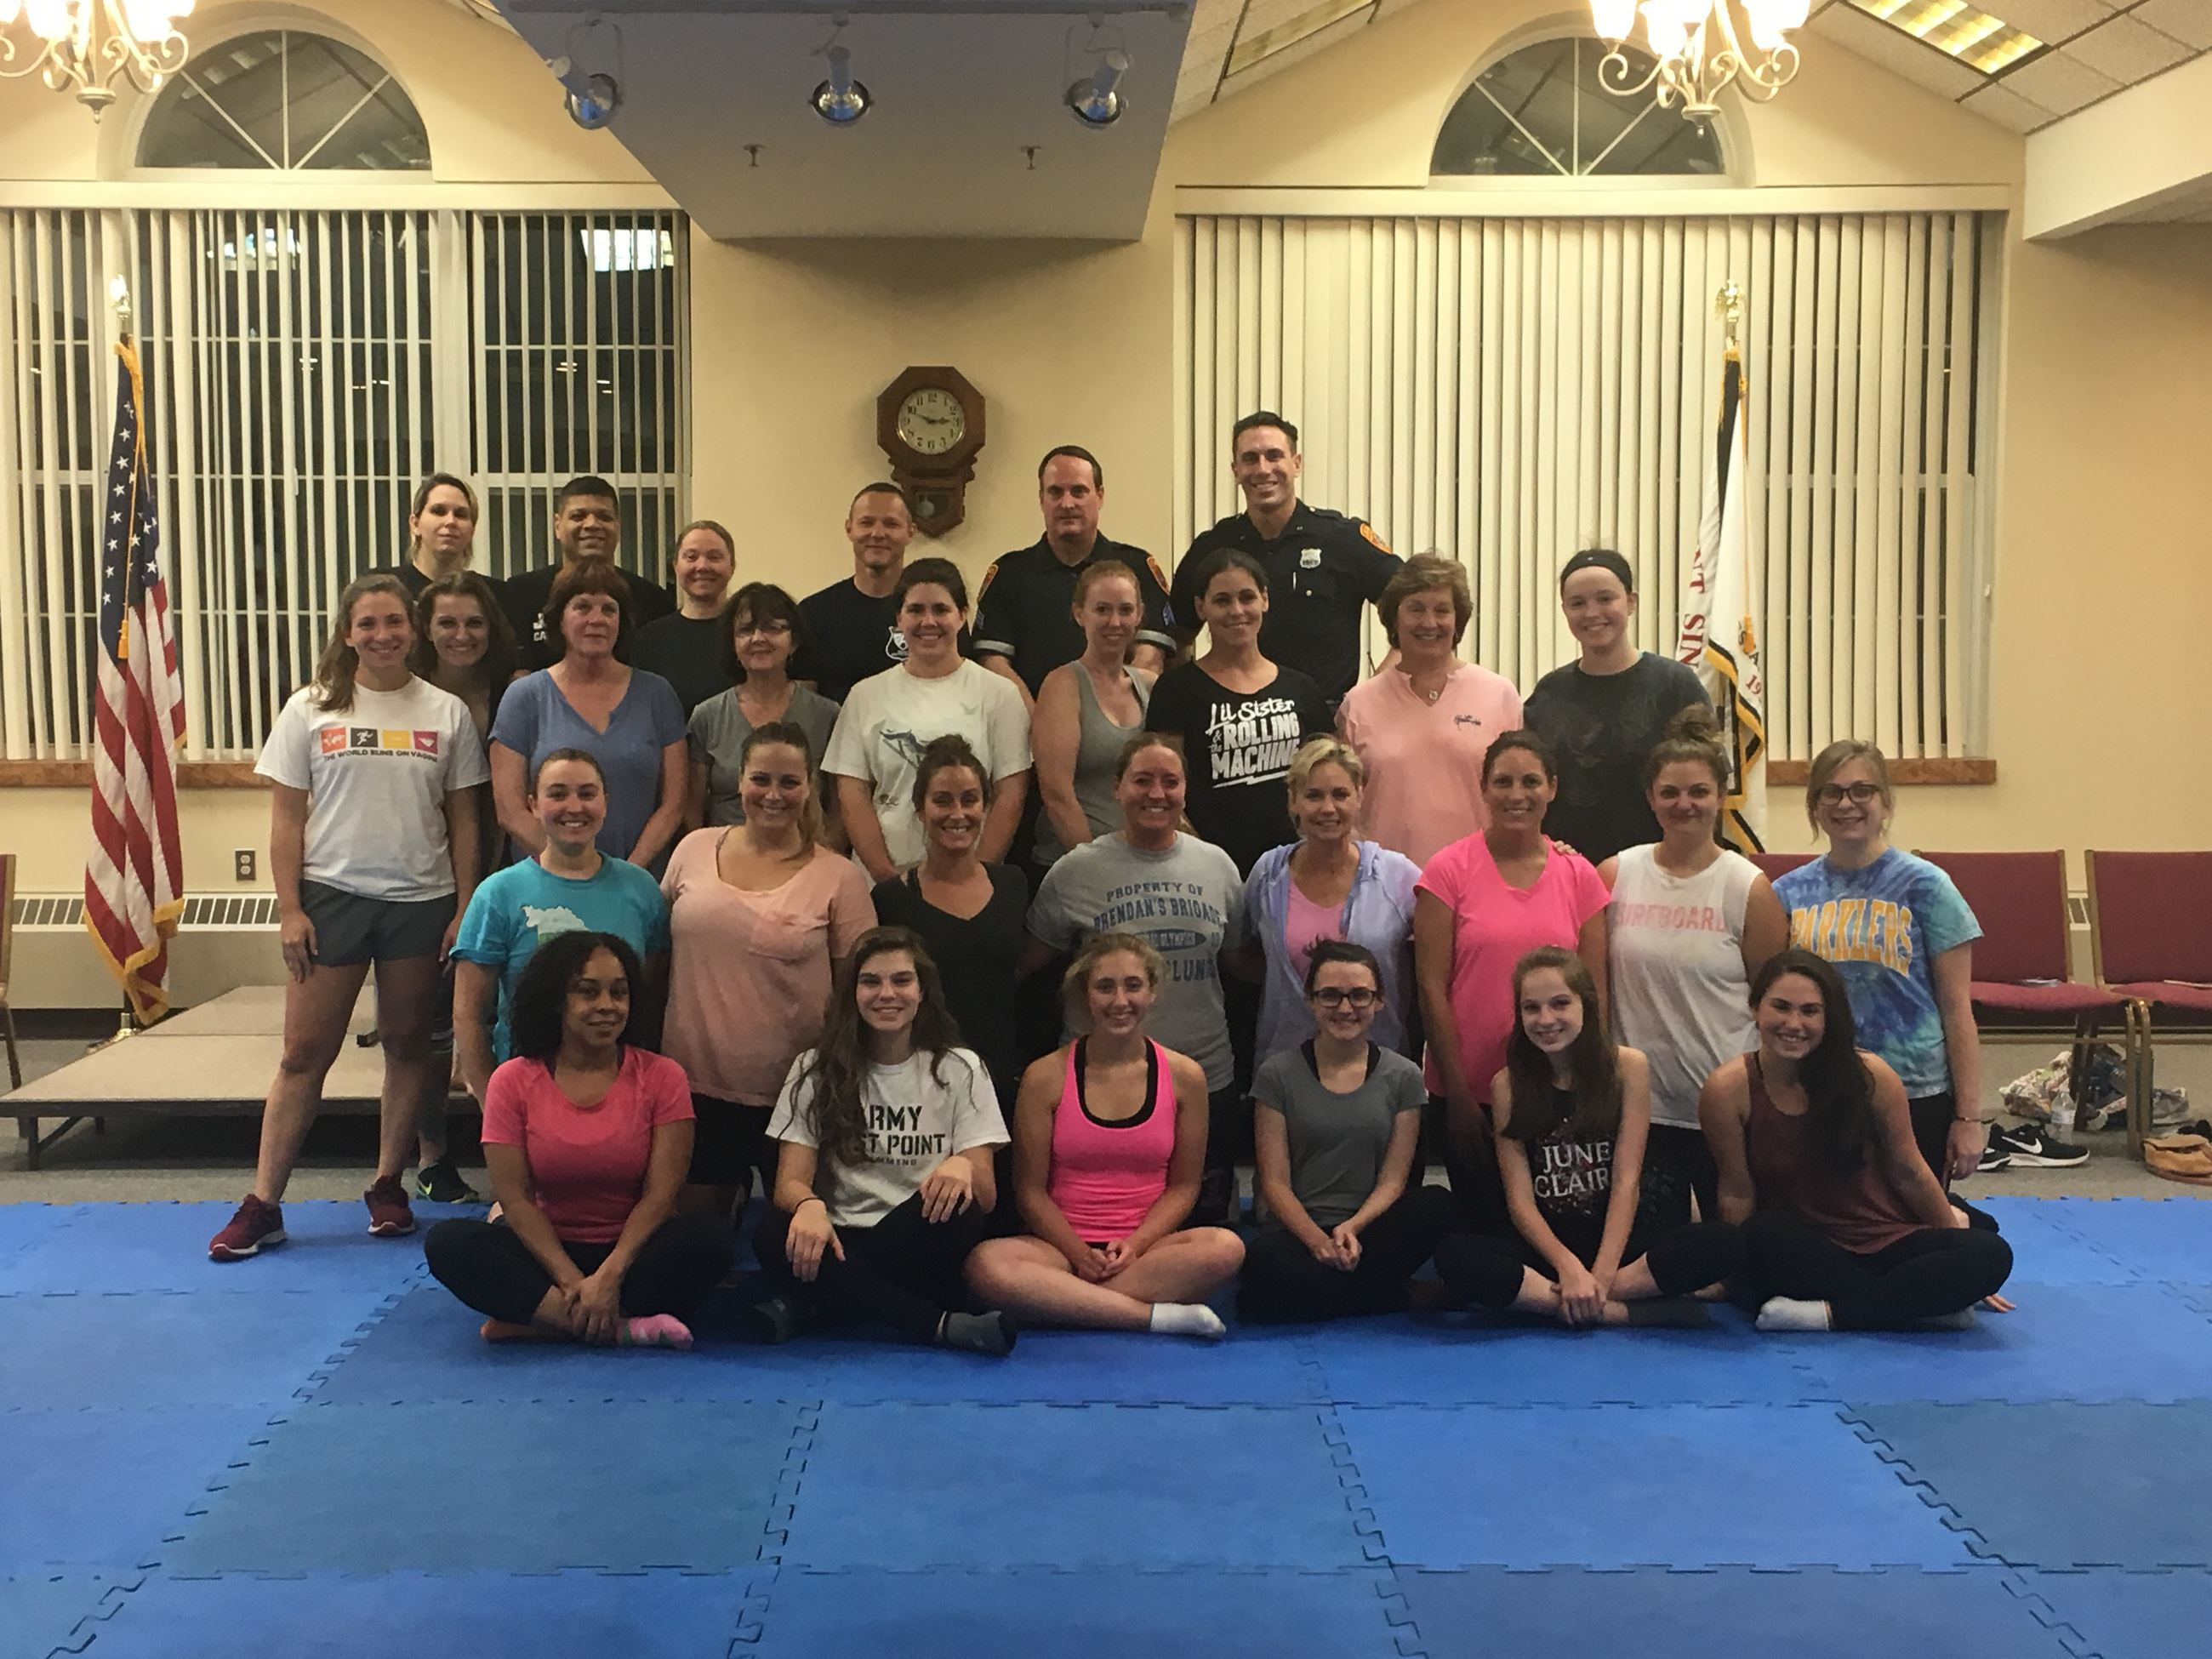 Group photo of participants in self-defense class.